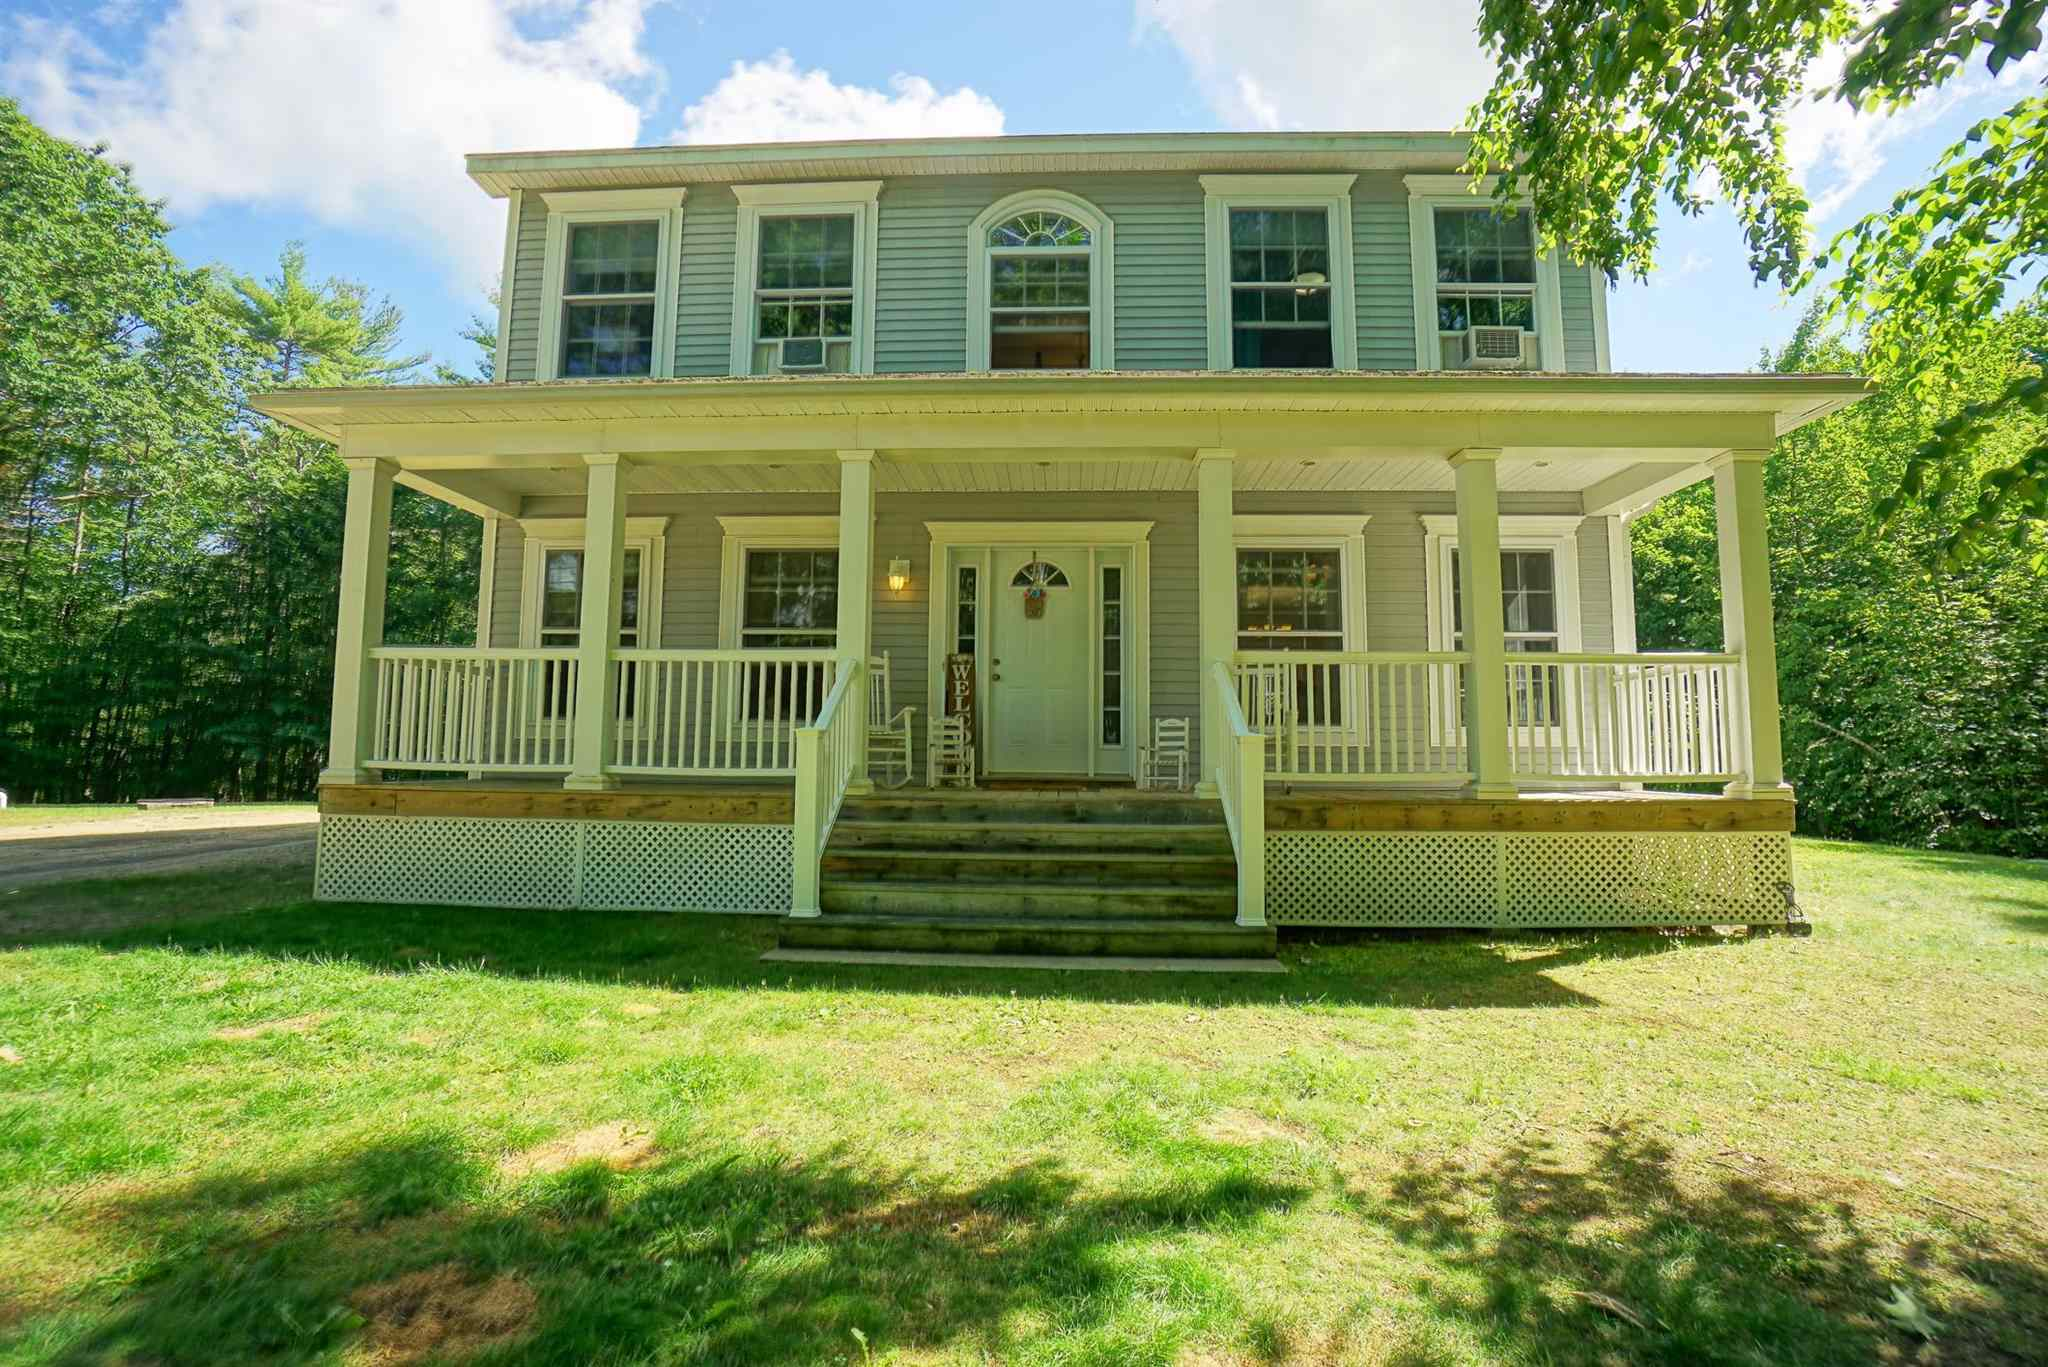 Photo of 25 Griffin Road Deerfield NH 03037